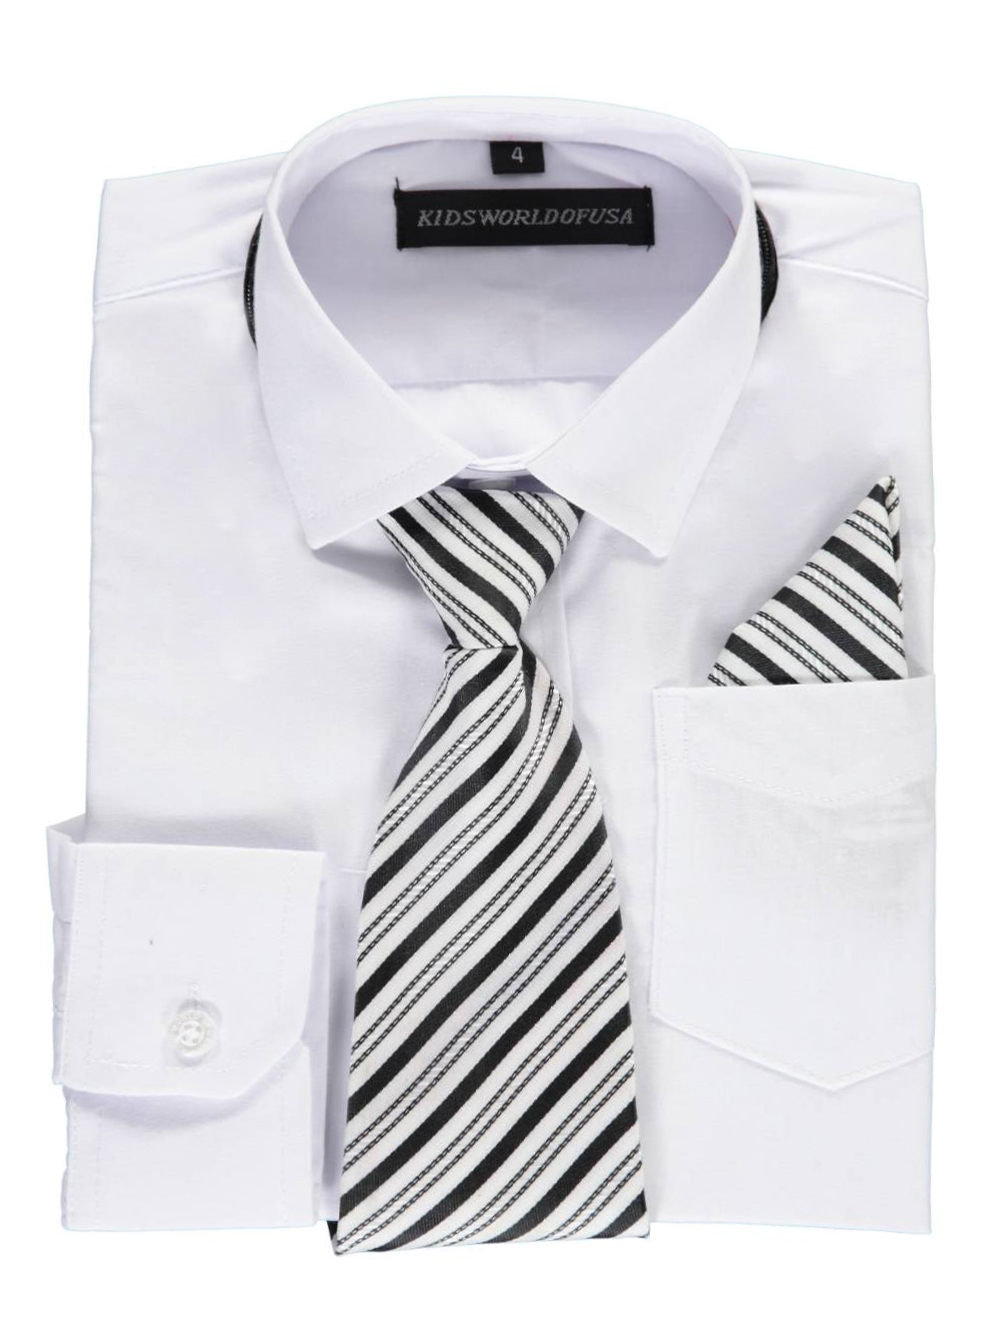 Kids World Little Boys' Dress Shirt with Accessories (Sizes 4 - 7) - white, 6